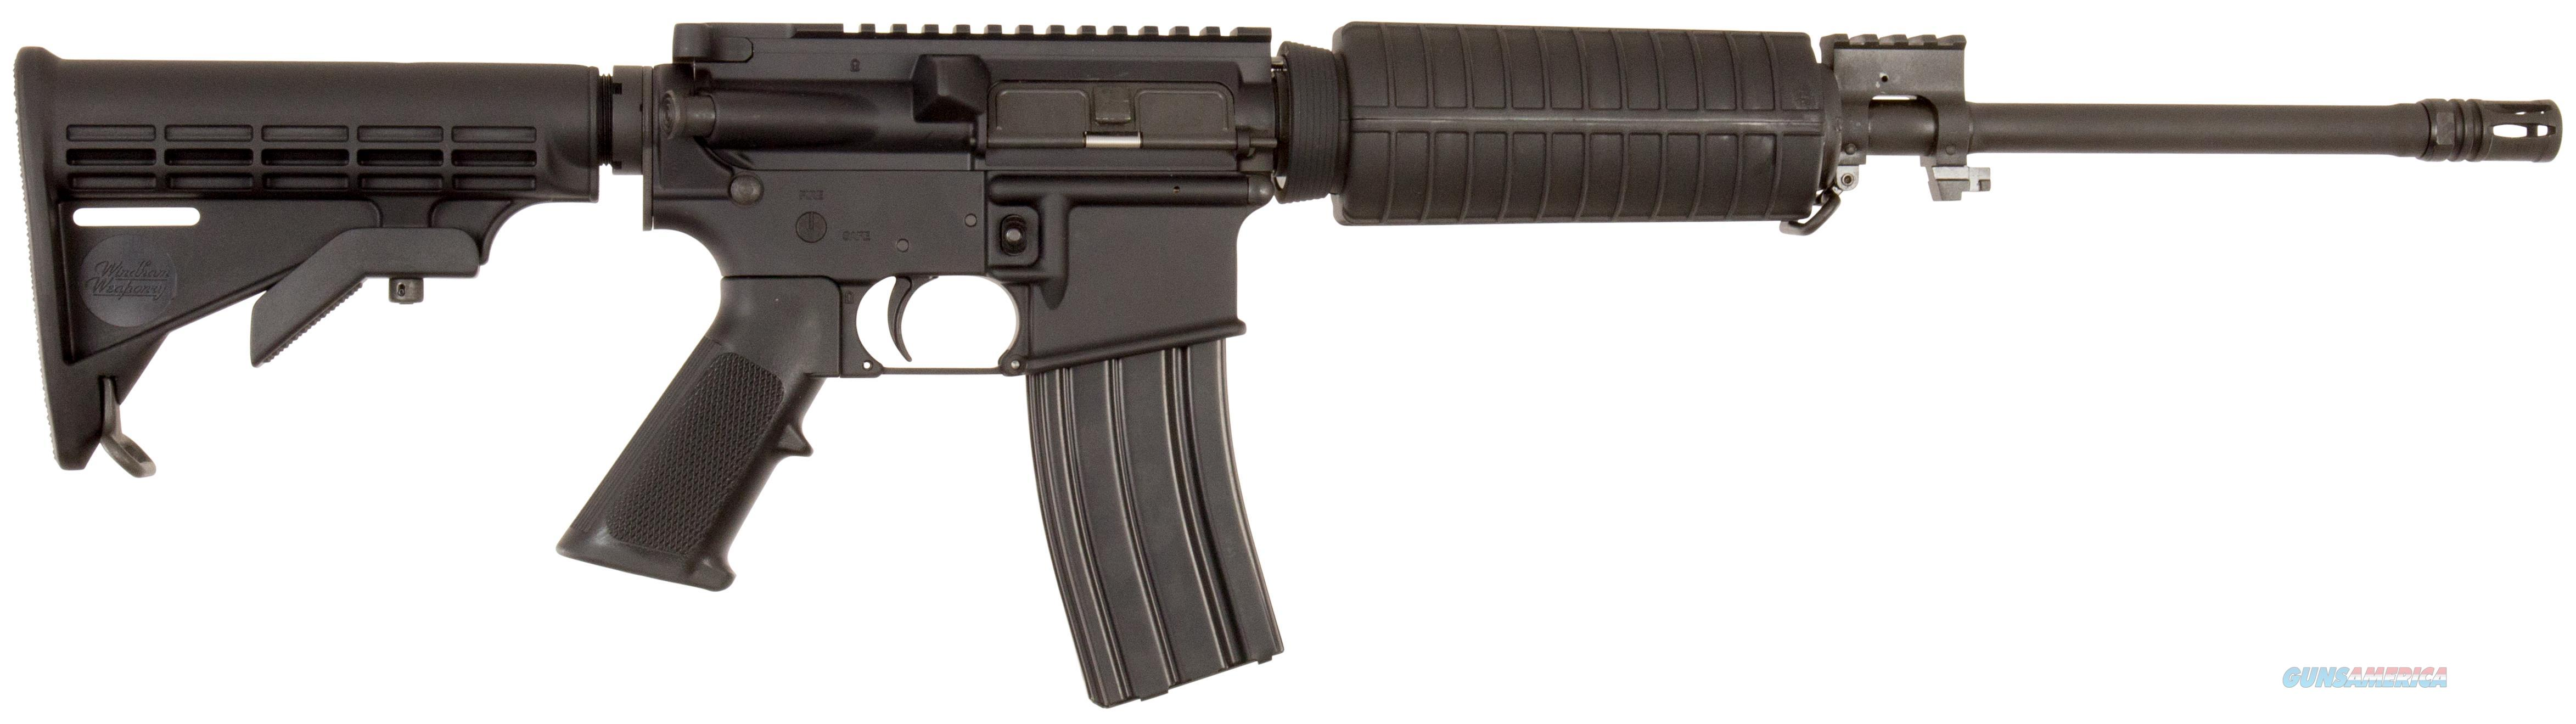 "Windham Weaponry R16ftt300 Src Semi-Automatic 300 Aac Blackout/Whisper (7.62X35mm) 16"" 30+1 6-Position Black Stk Black Hard Coat Anodized/Black Phosphate R16FTT-300  Guns > Rifles > Windham Weaponry Rifles"